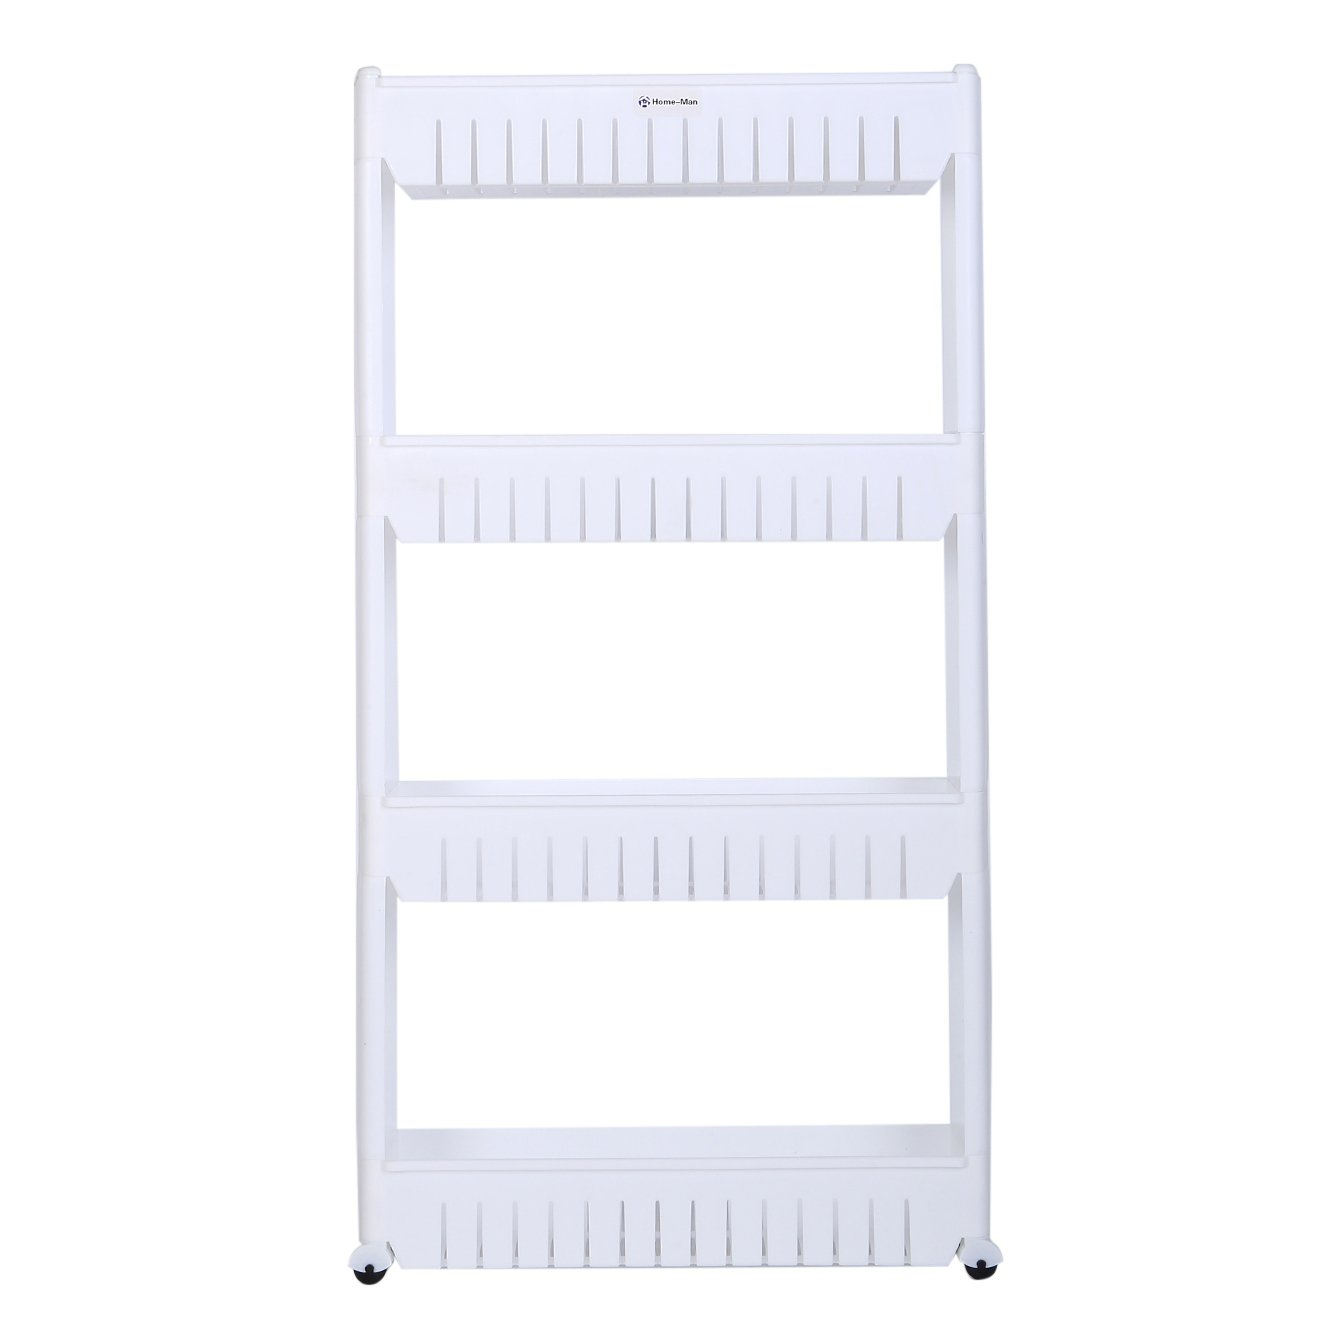 Home-Man Laundry Room Organizer 4 Tier /… Gap Storage Slim Slide Out Pantry Storage Rack for Narrow Spaces Mobile Shelving Unit Organizer with 4 Large Storage Baskets